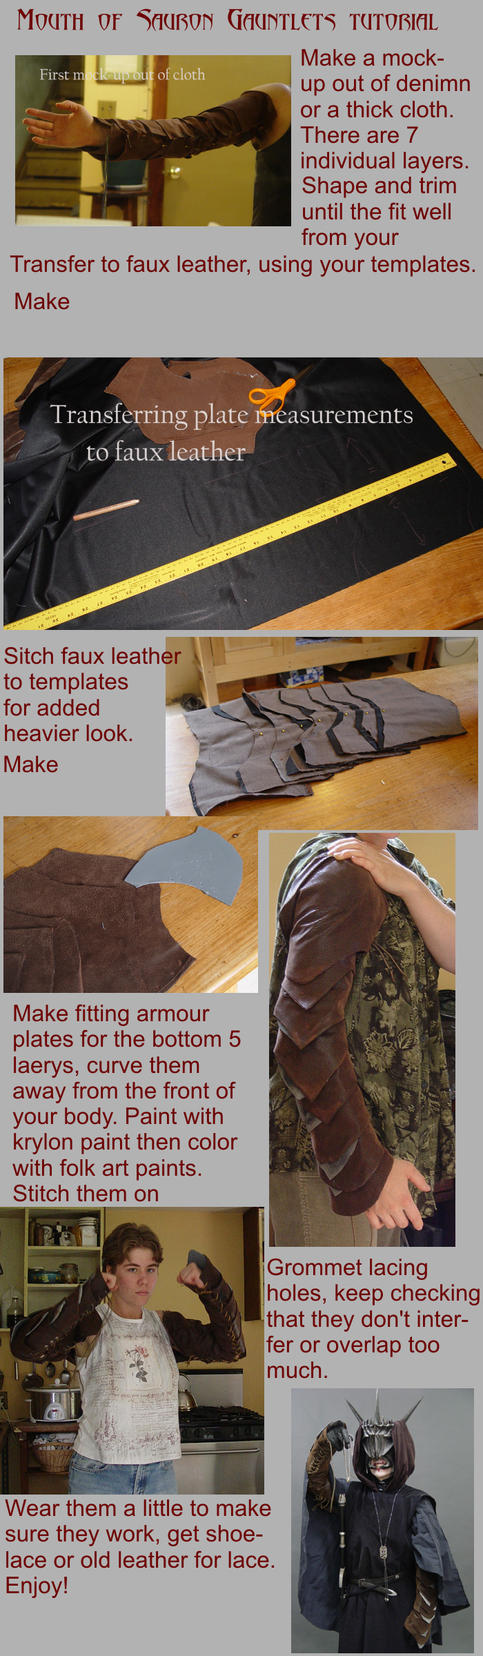 How to make MoS Gauntlets by InKibus